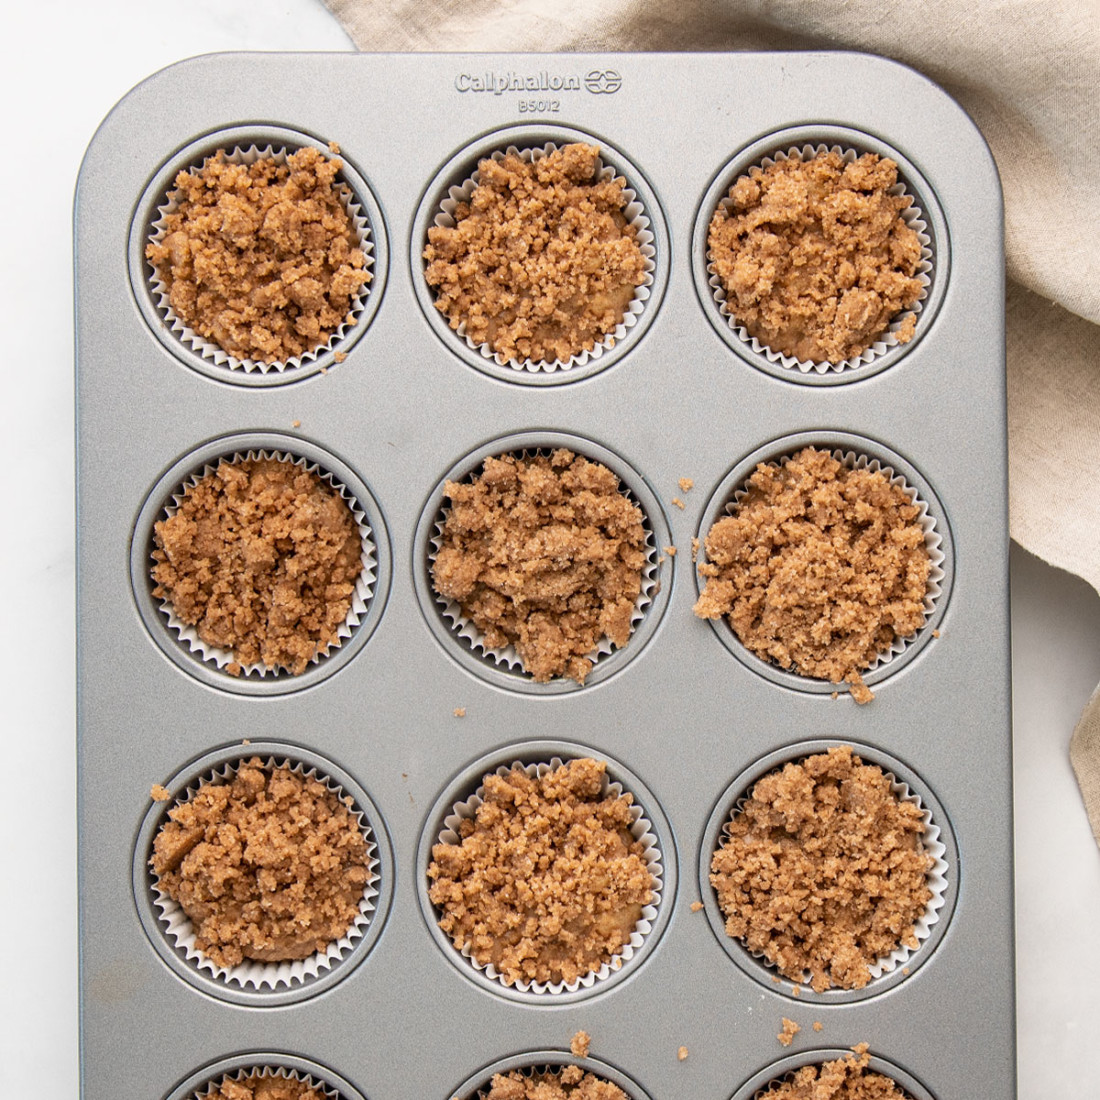 muffin tin filled with batter and topped with streusel crumble